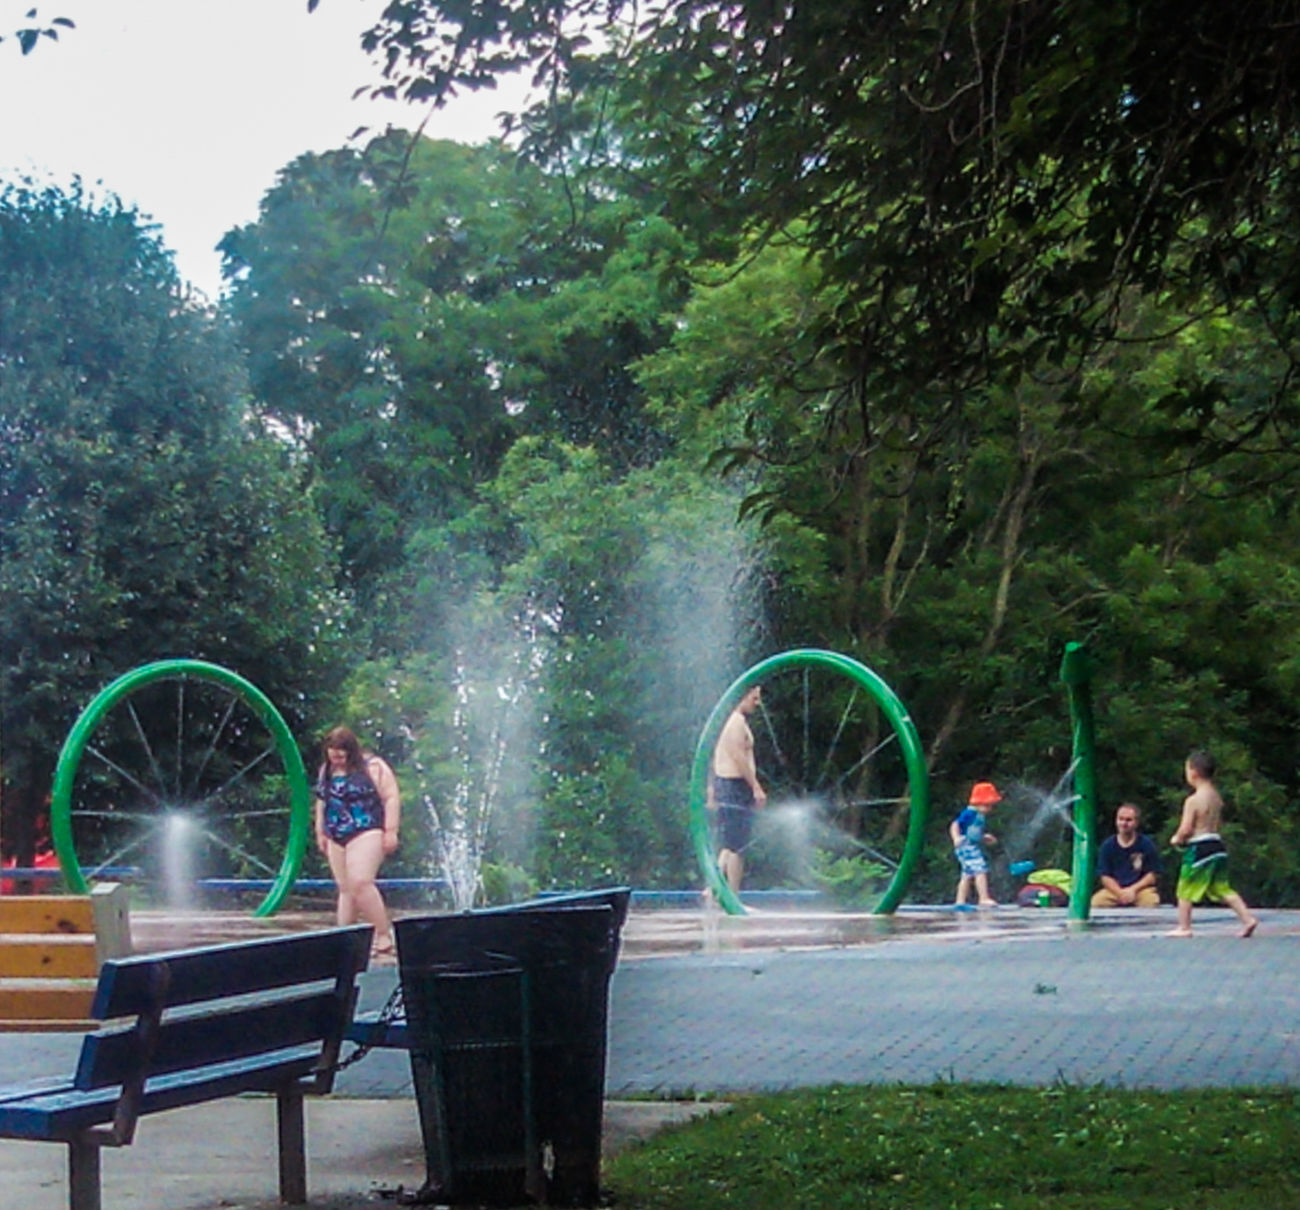 Cooling off the summers heat @ houston park in Roxborough . Philadelphia Summertime Water Refreshing :) Cooling  Kids Kids Being Kids Check This Out Roxborough Family Time Benches Relaxation EyeEm Gallery Urban Landscape Urban Fun AndroidPhotography Howard Roberts